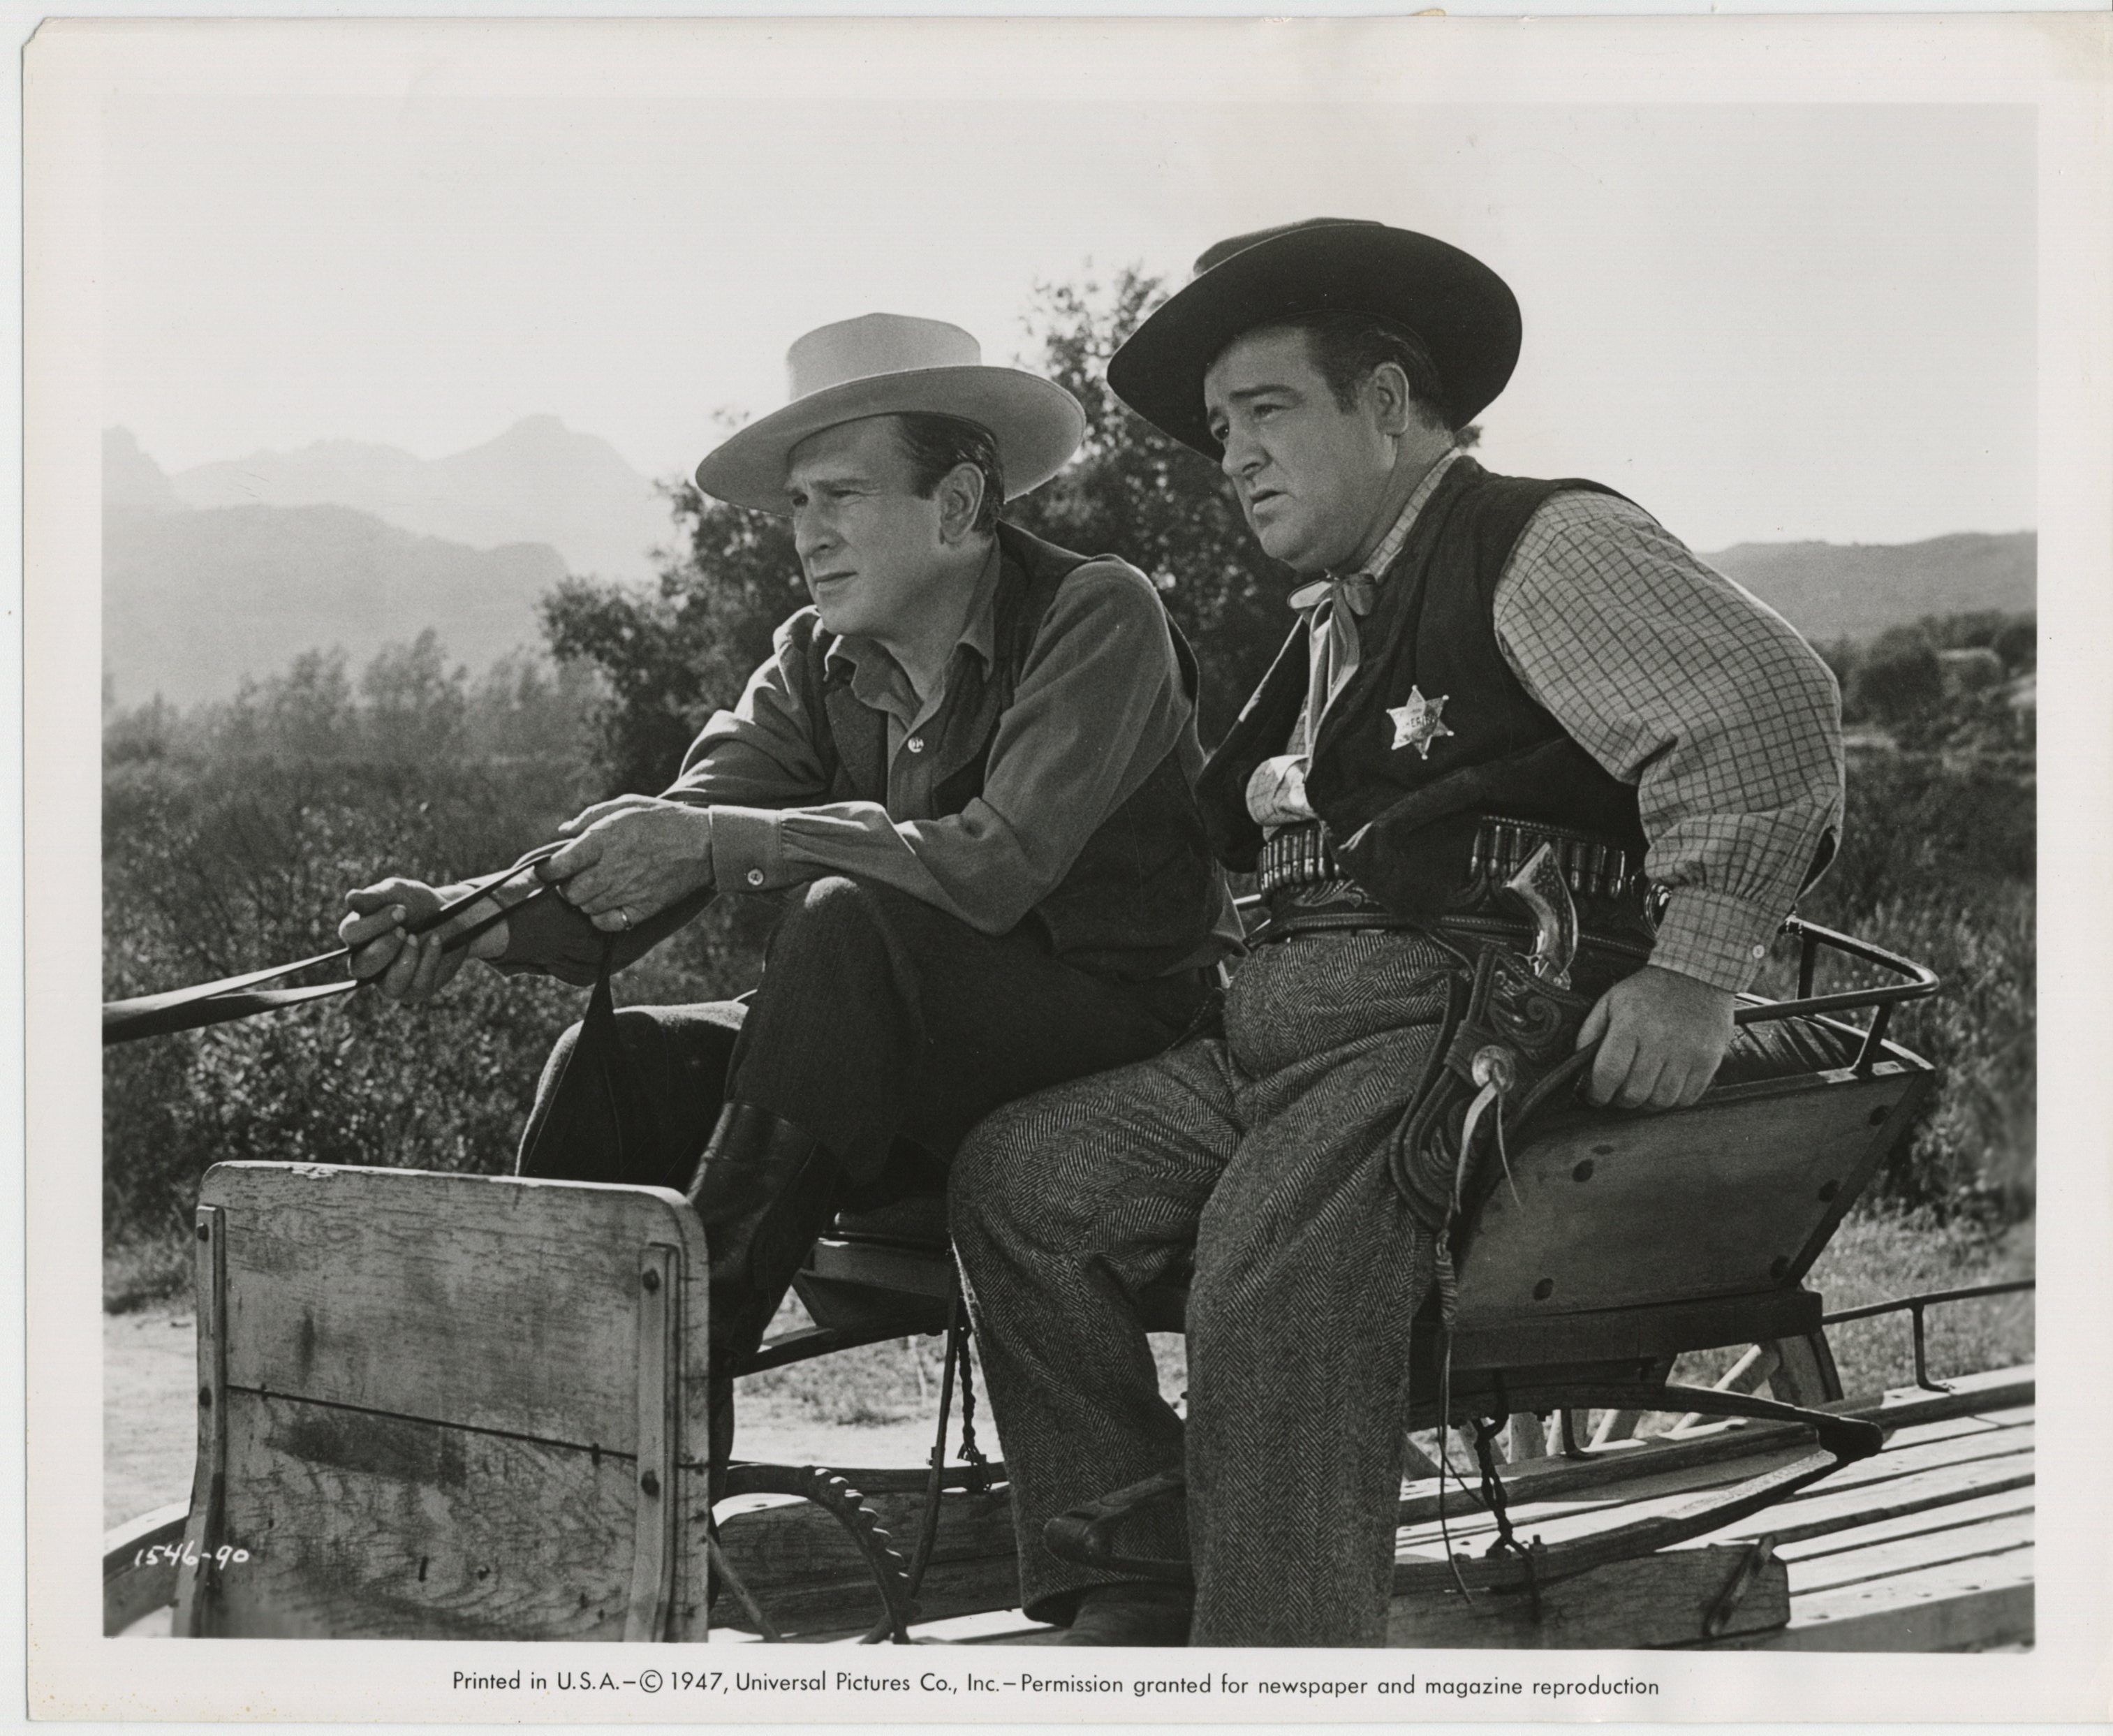 Bud Abbott and Lou Costello in The Wistful Widow of Wagon Gap (1947)